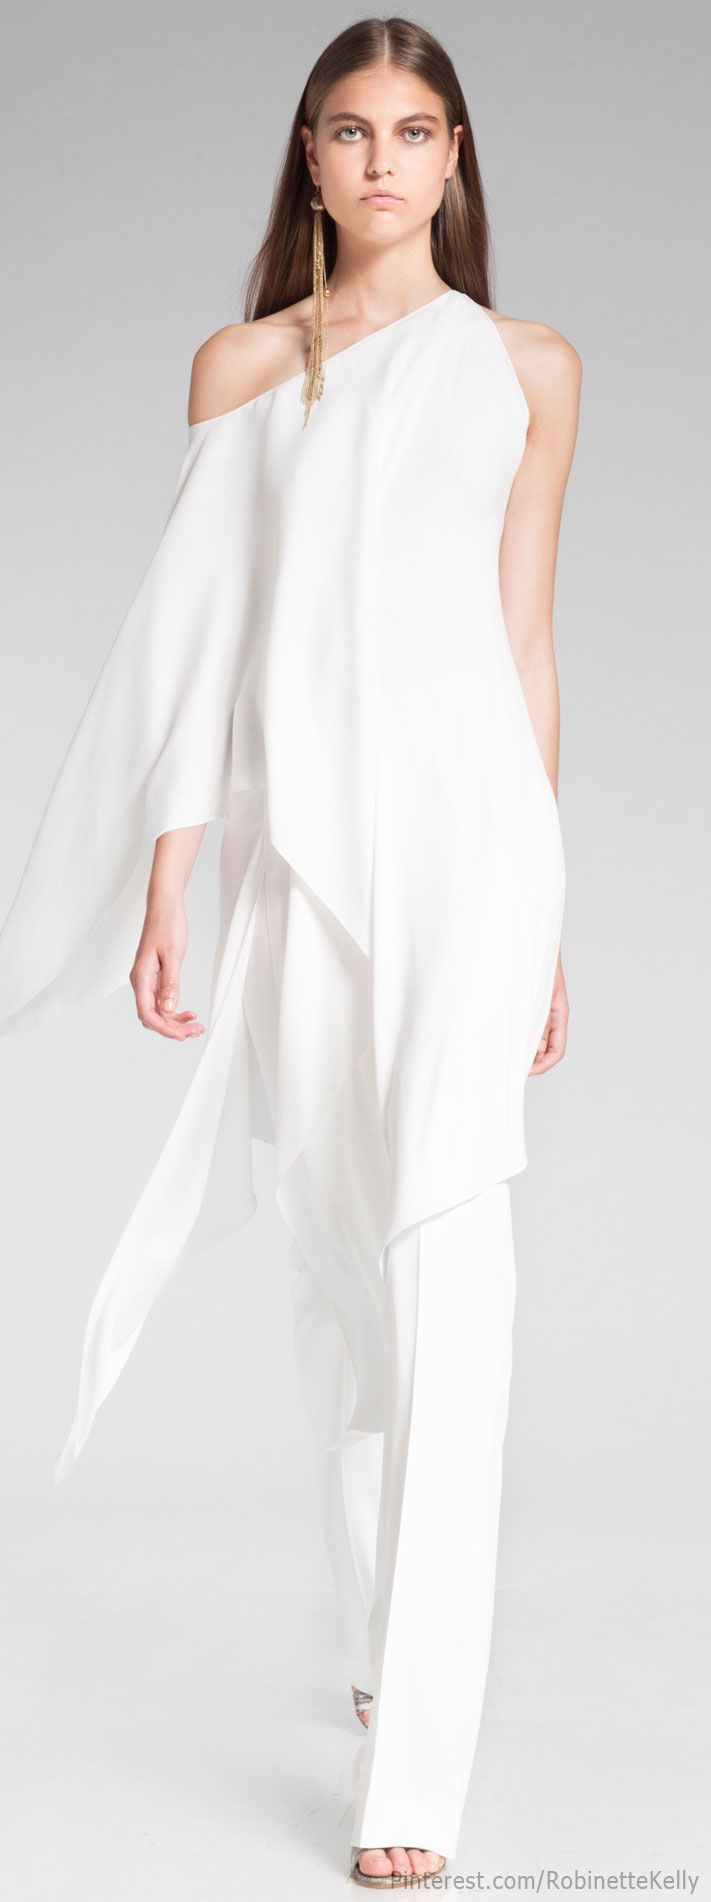 Be the Breakout Bride in an Alternative Wedding Gown | Wedding ...